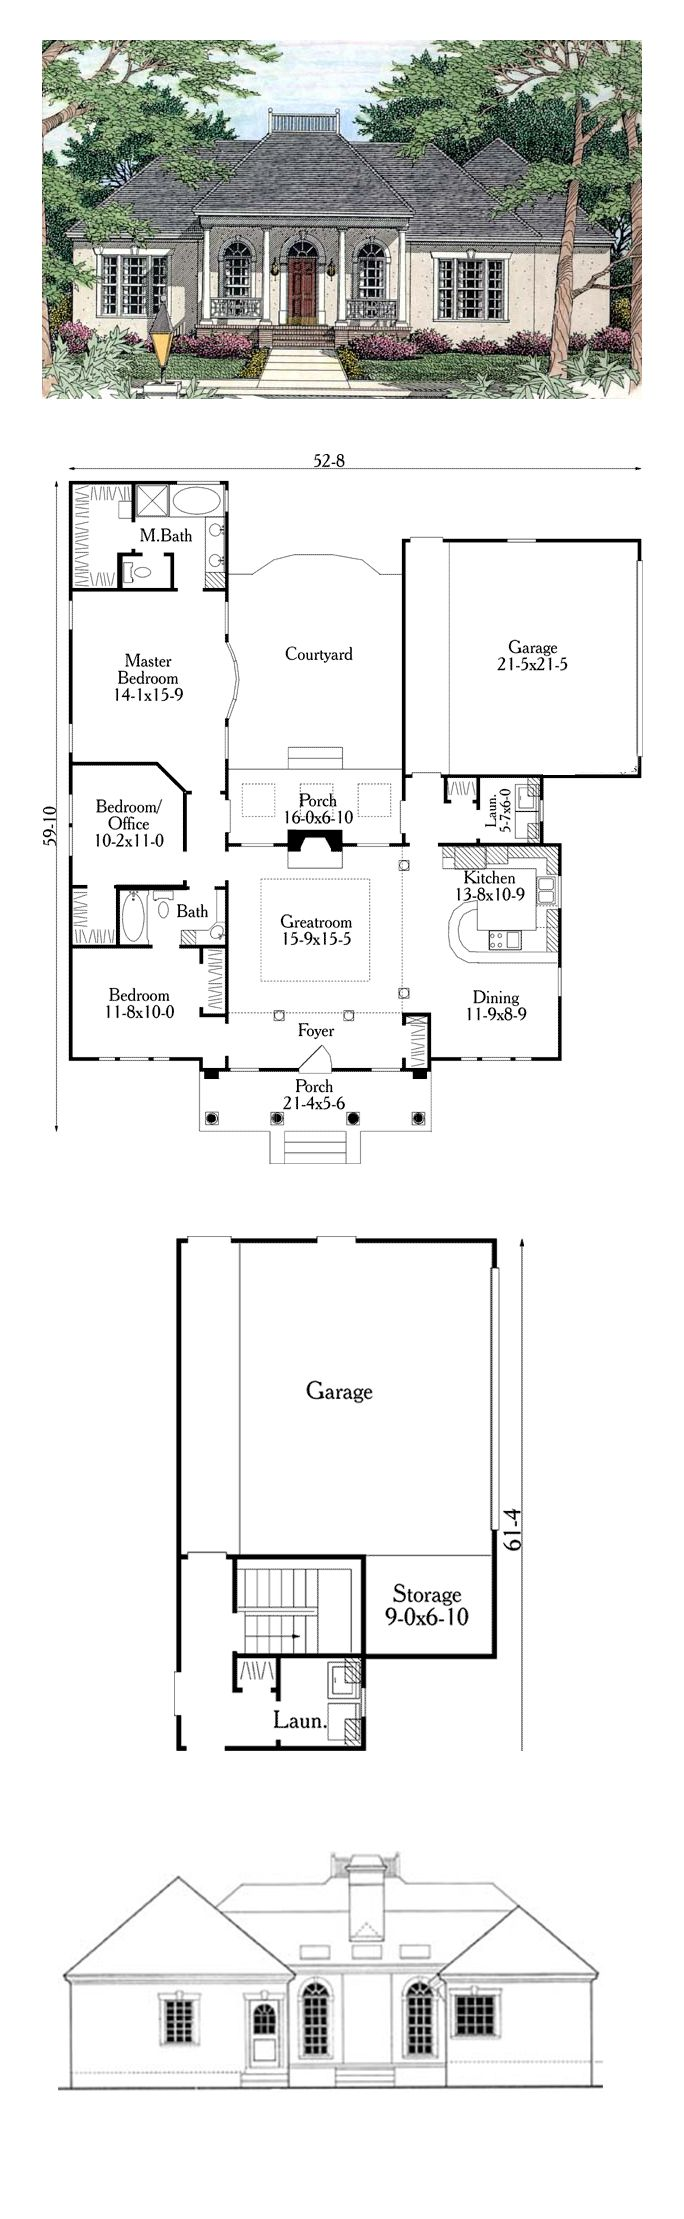 16 best images about colonial house plans on pinterest for House plans with columns